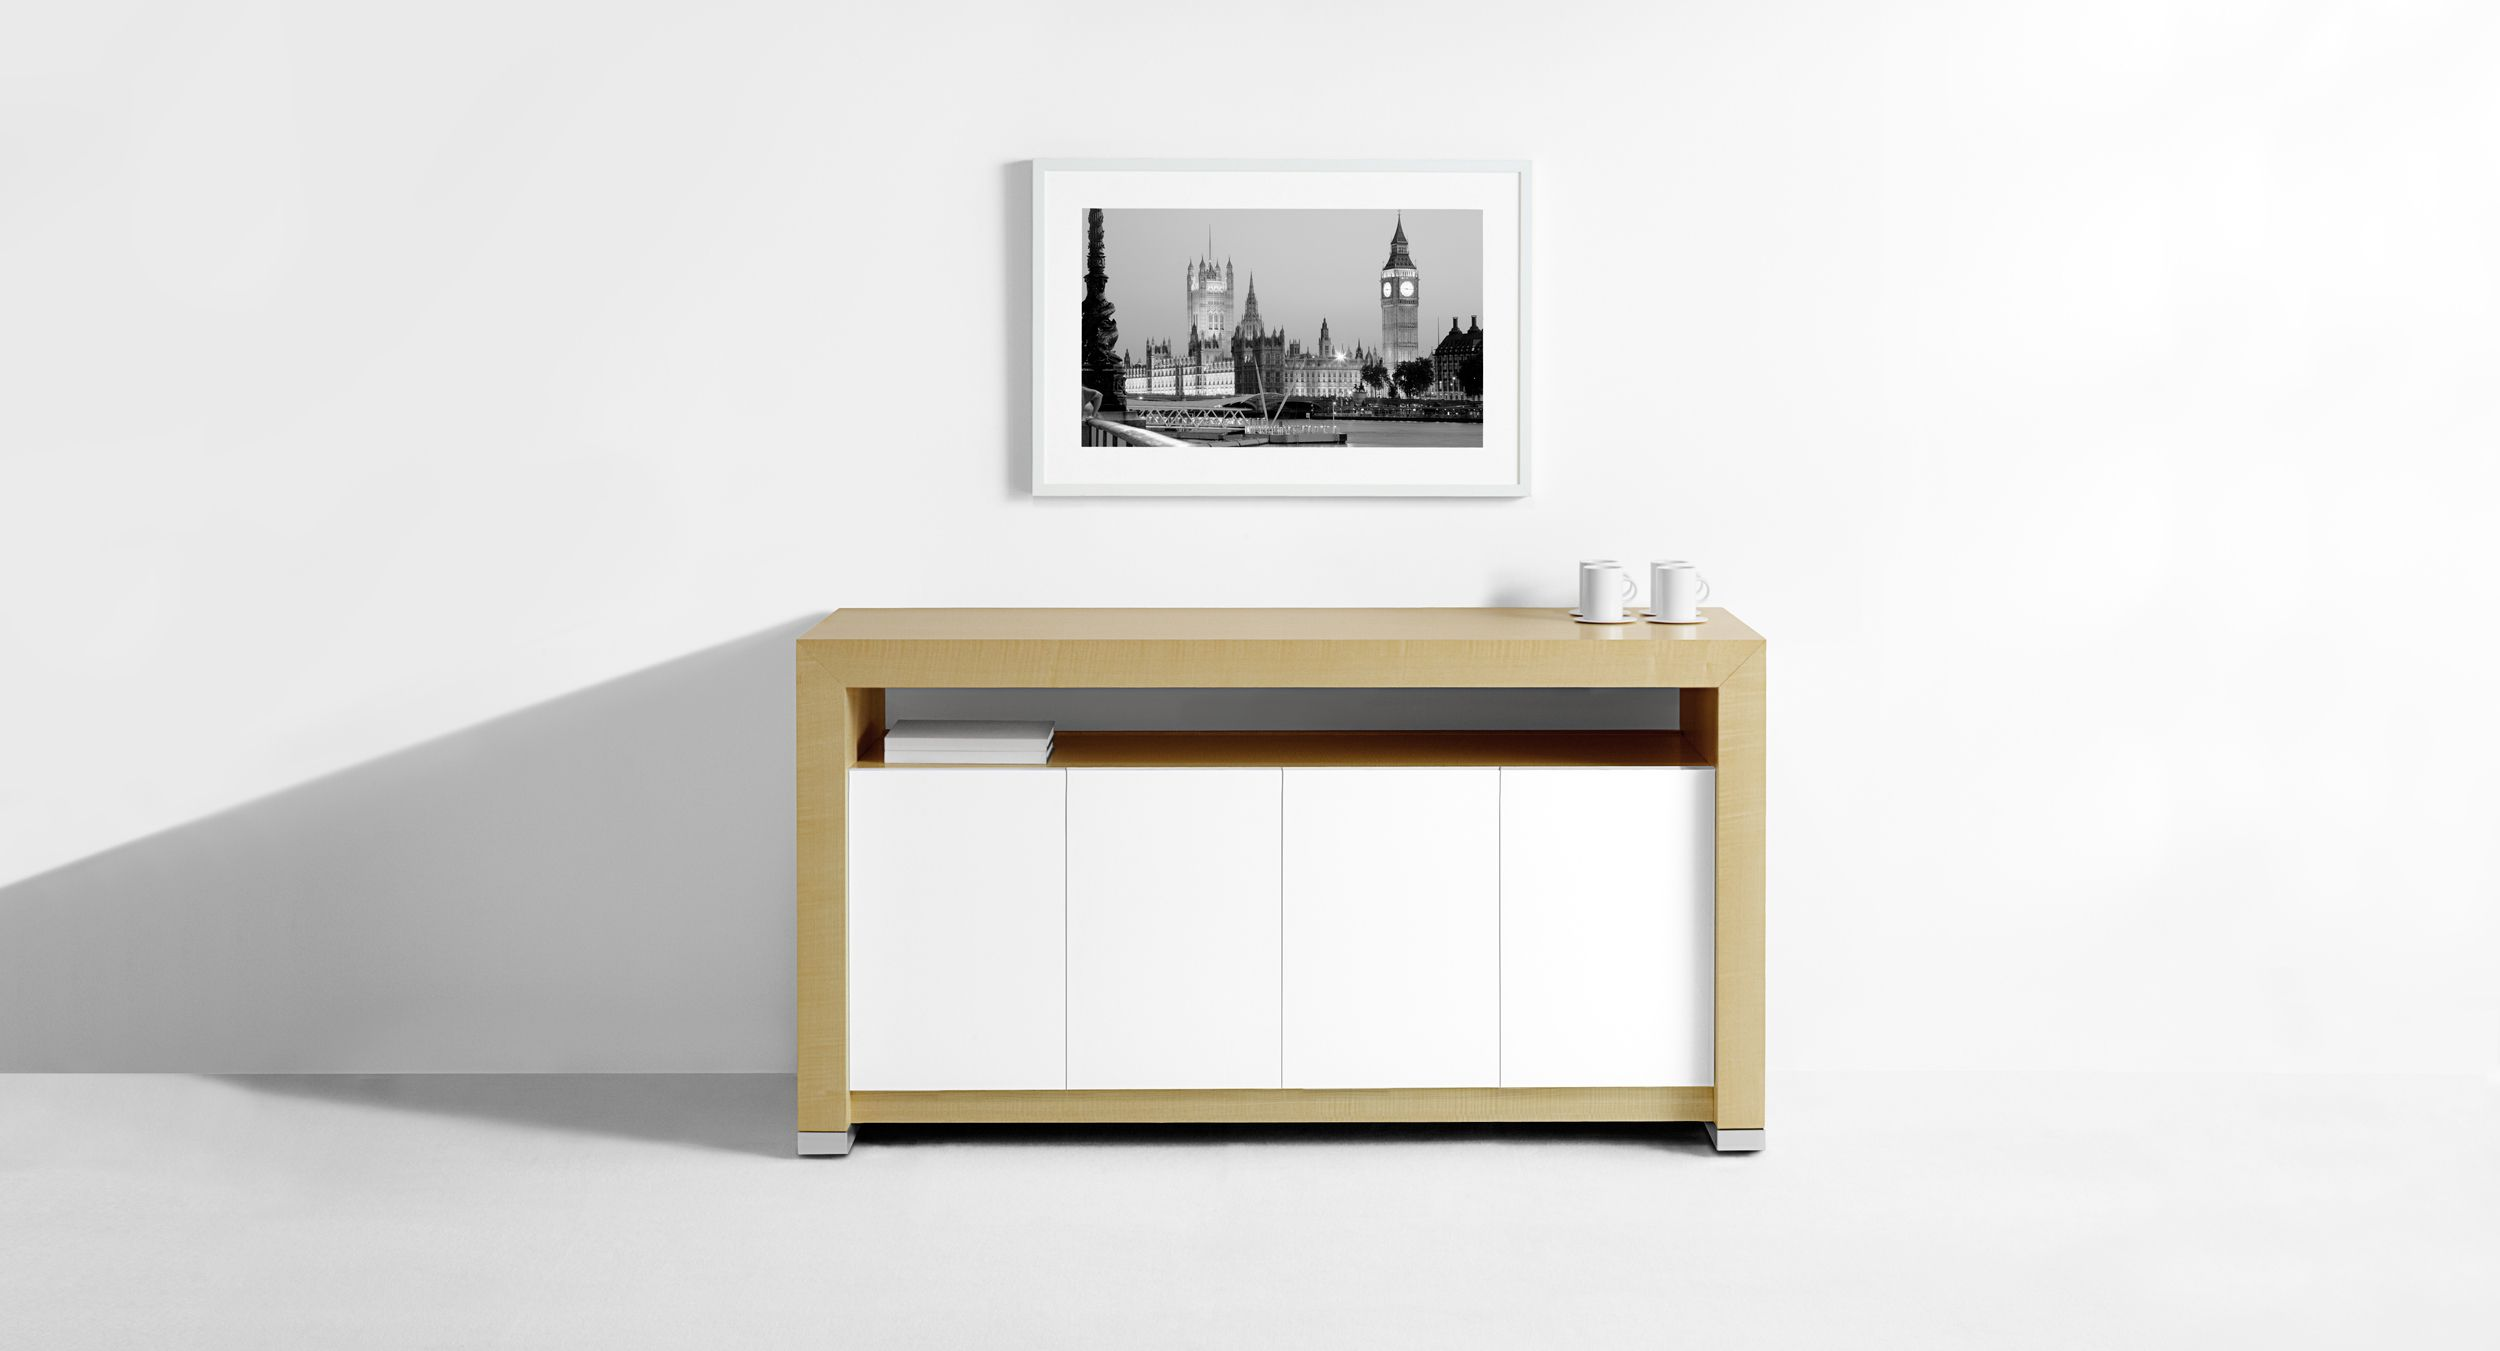 Motus Serving Credenzas are mobile and feature door access from the front and back.